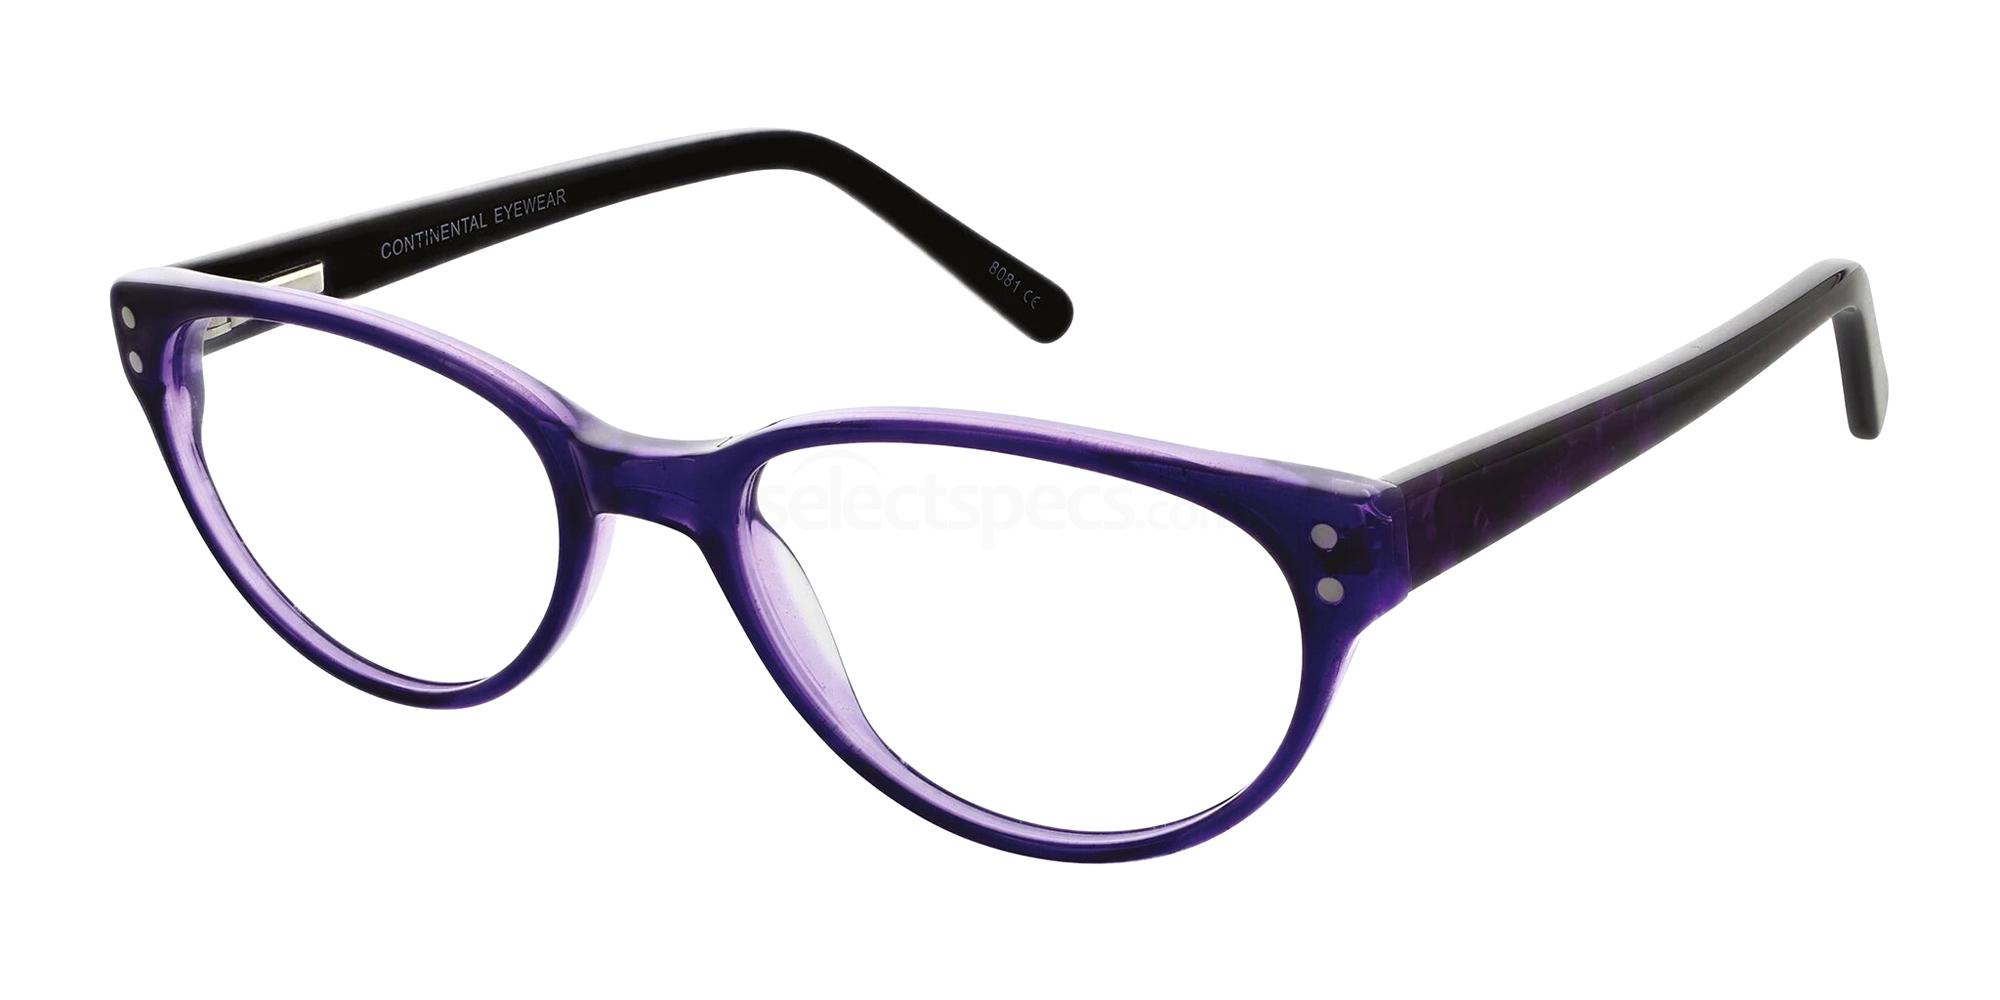 Purple 80 Glasses, Zenith Zest